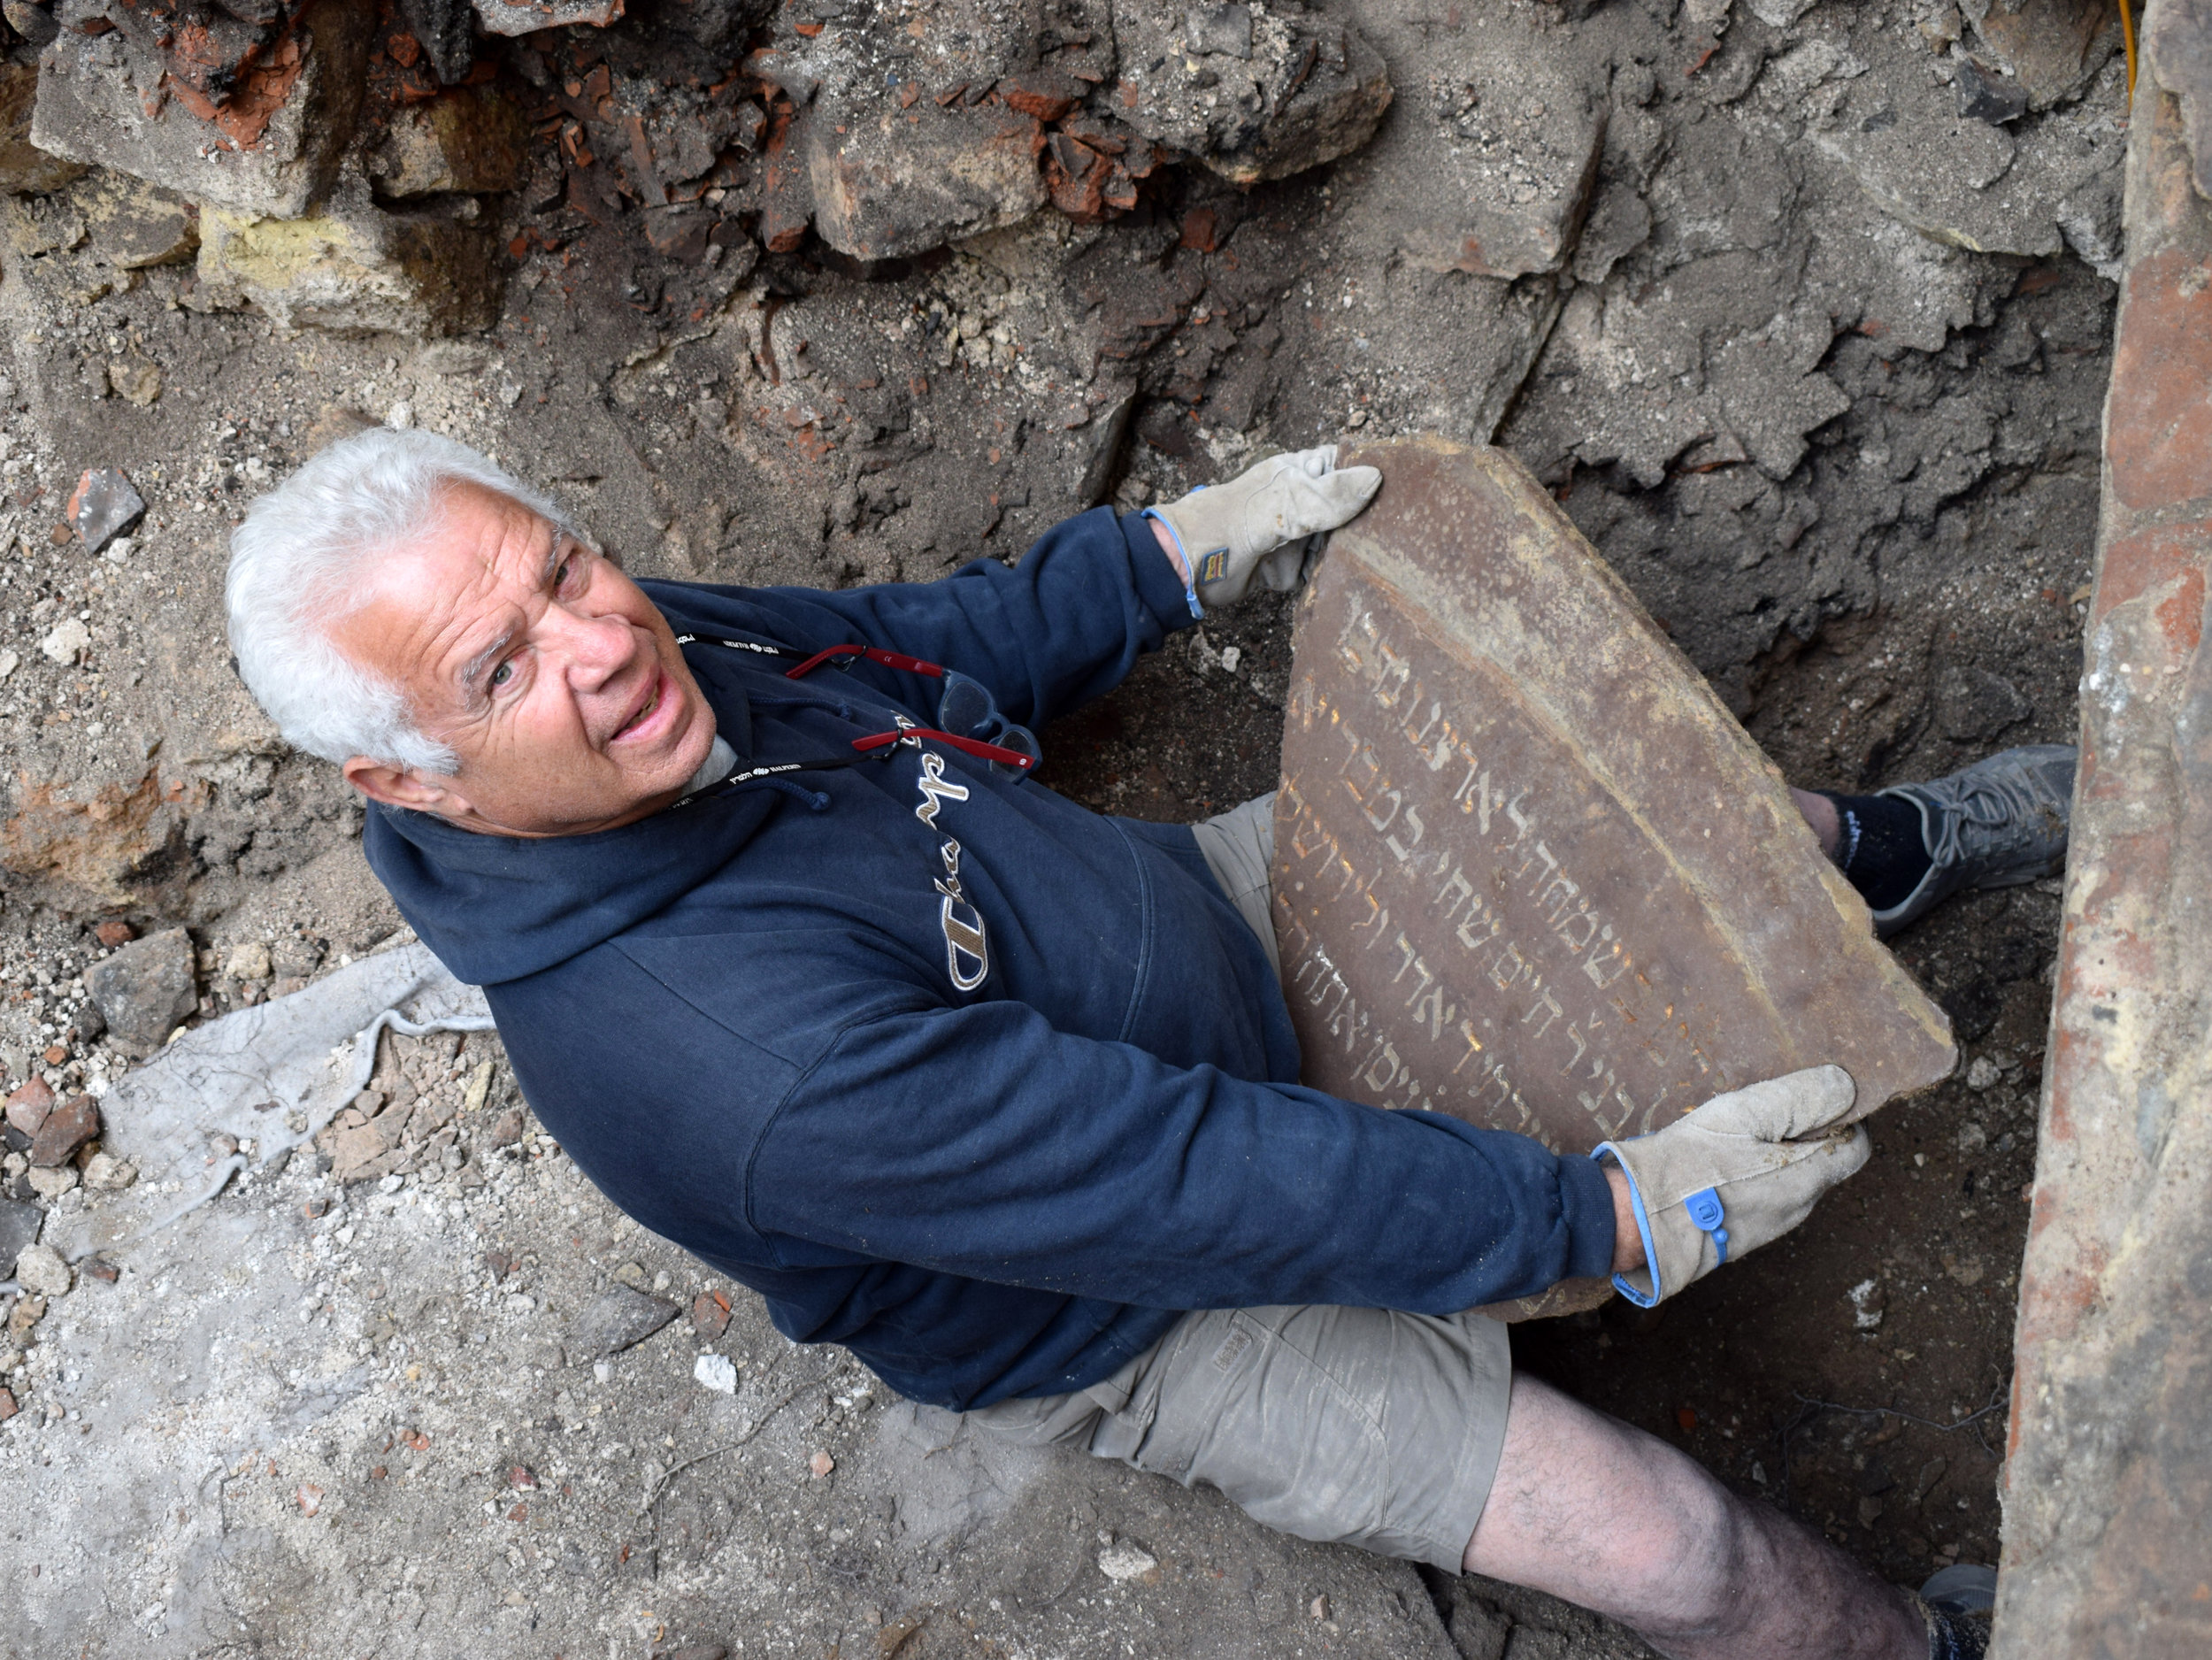 A member of the excavation team holding one of the inscription fragments.